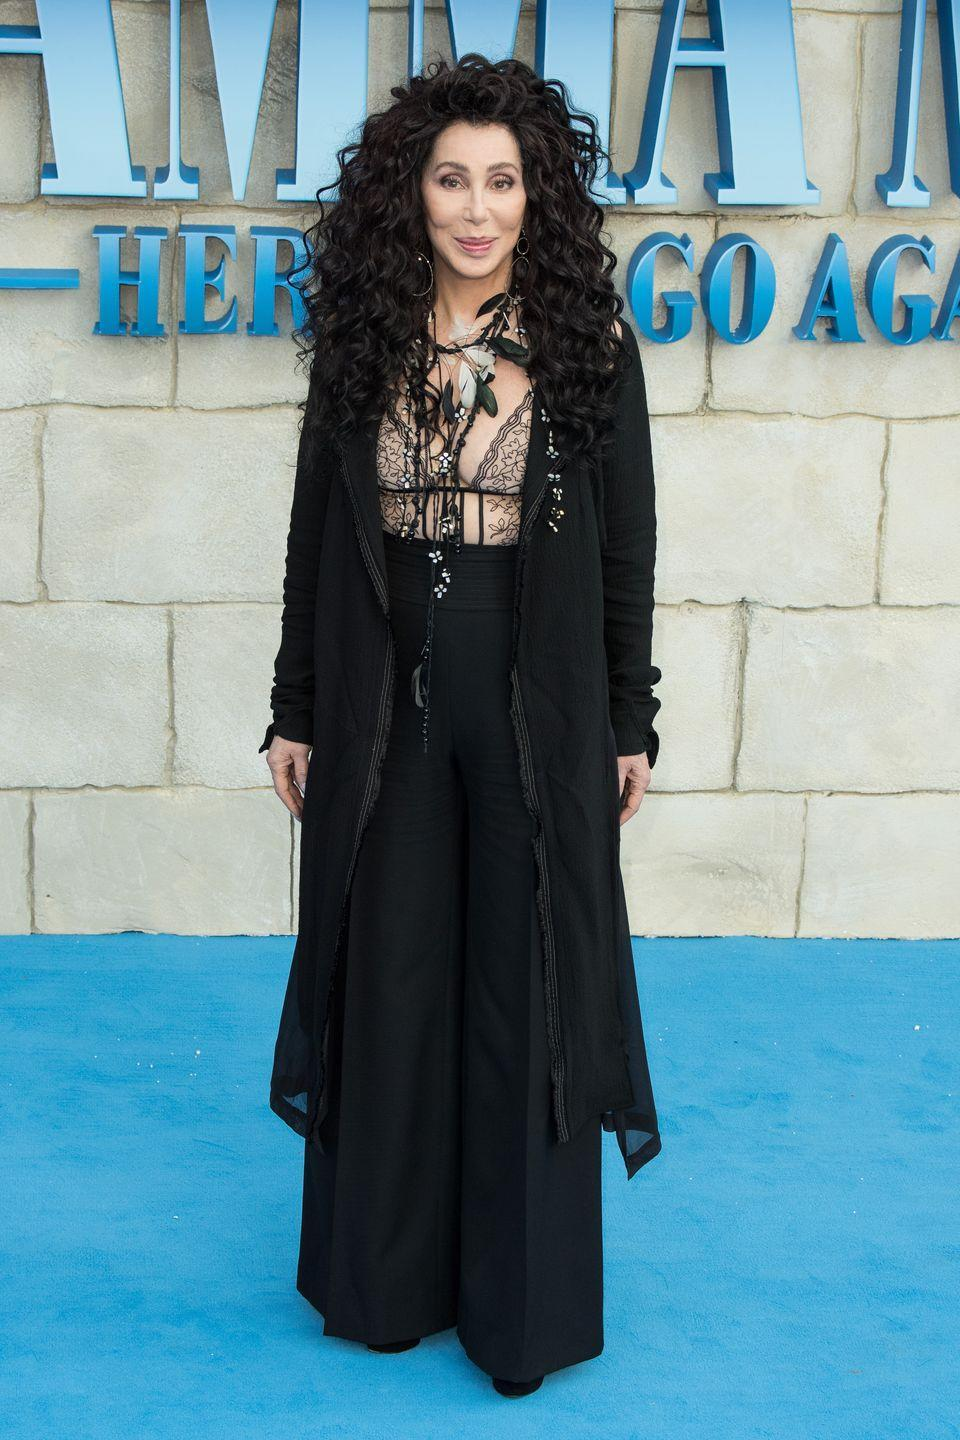 <p>At the premiere for Mamma Mia 2: Here We Go Again in a sheer lace bodysuit, wide-leg pants, and feathered necklaces. </p>